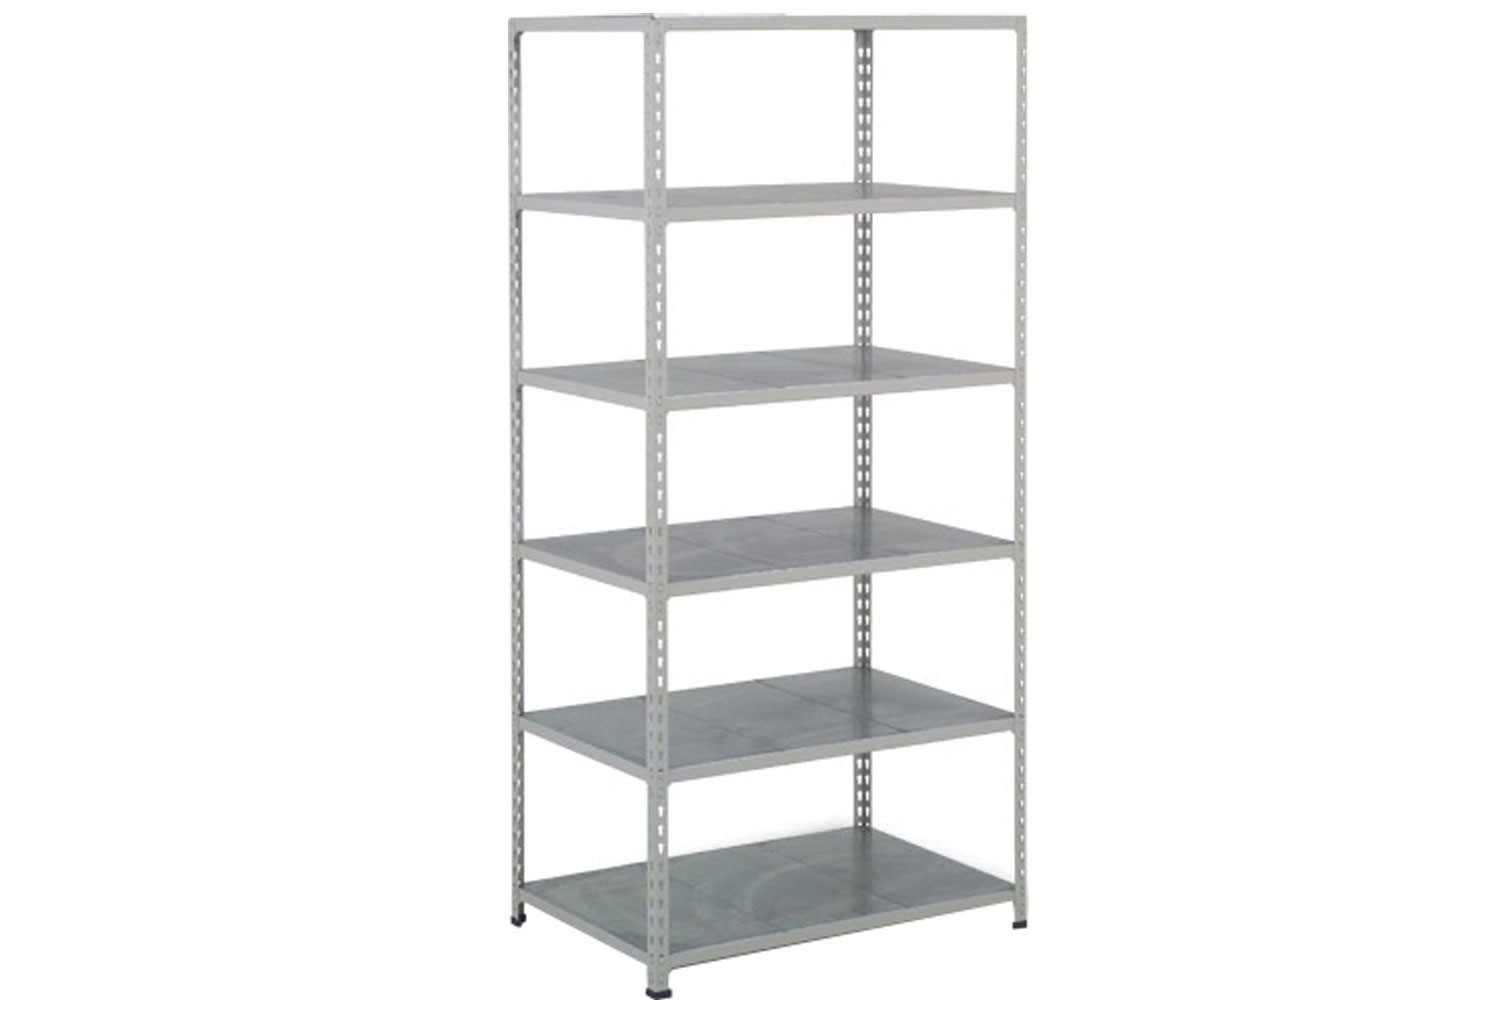 Rapid 2 Shelving With 6 Galvanized Shelves 915Wx1600H (Grey)